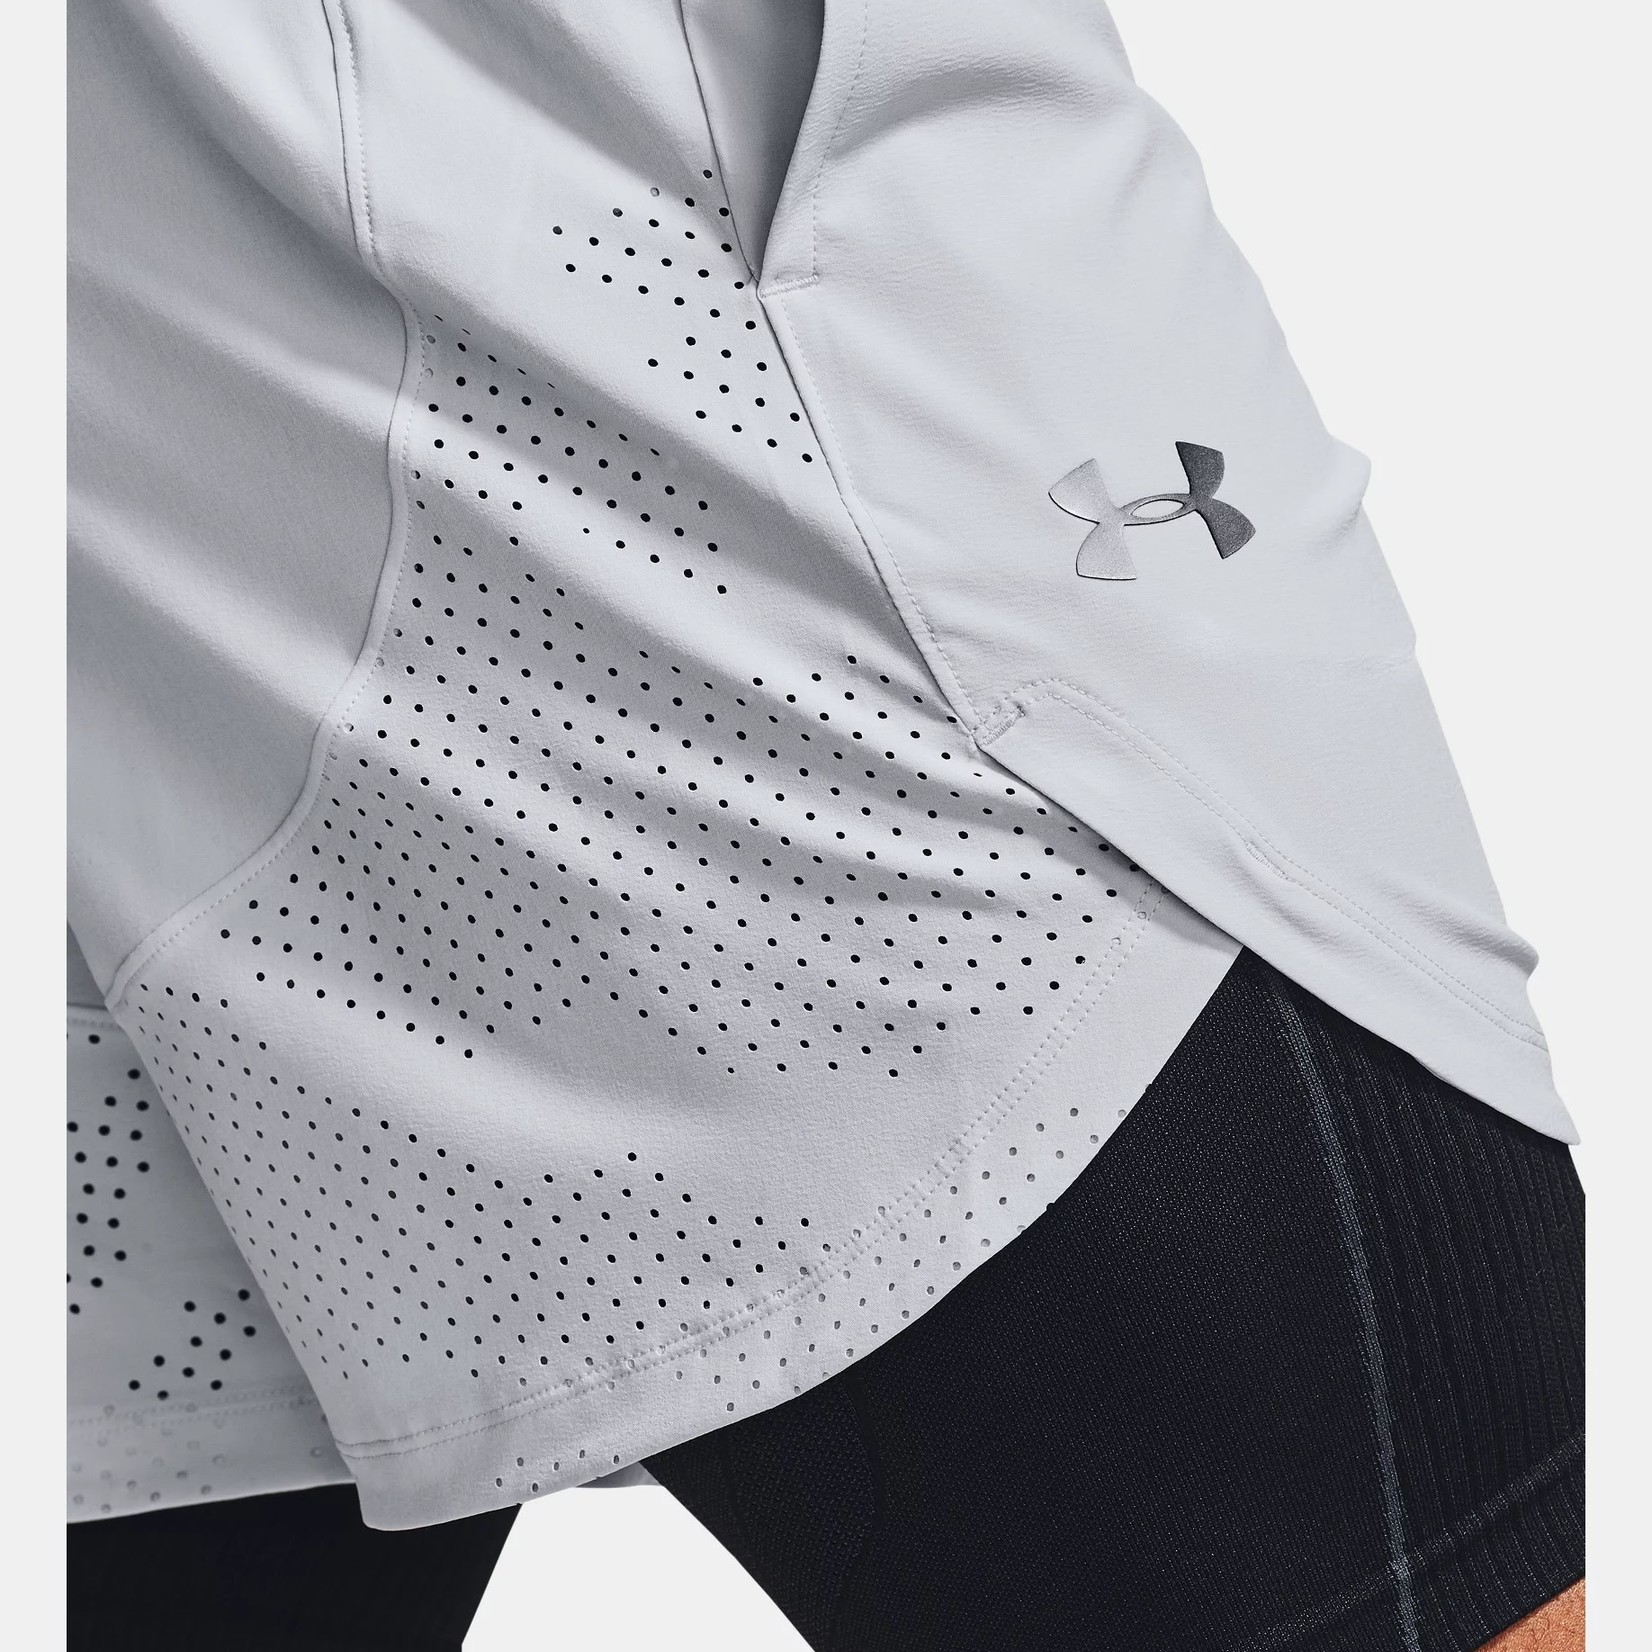 Under Armour UA Stretch-Woven Shorts-Gray